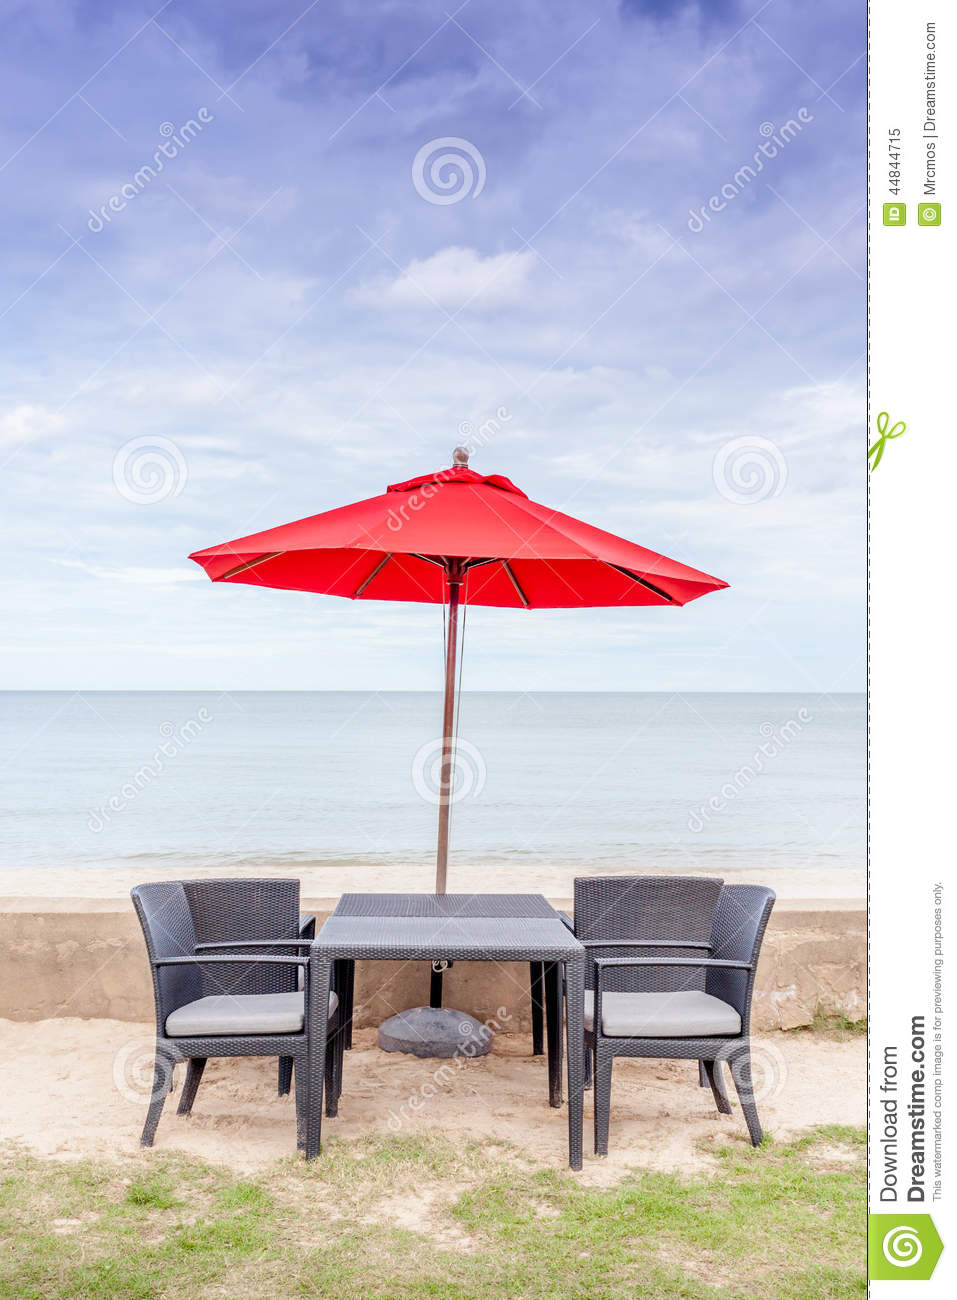 Table With Chairs And Umbrella Cartoon Vector